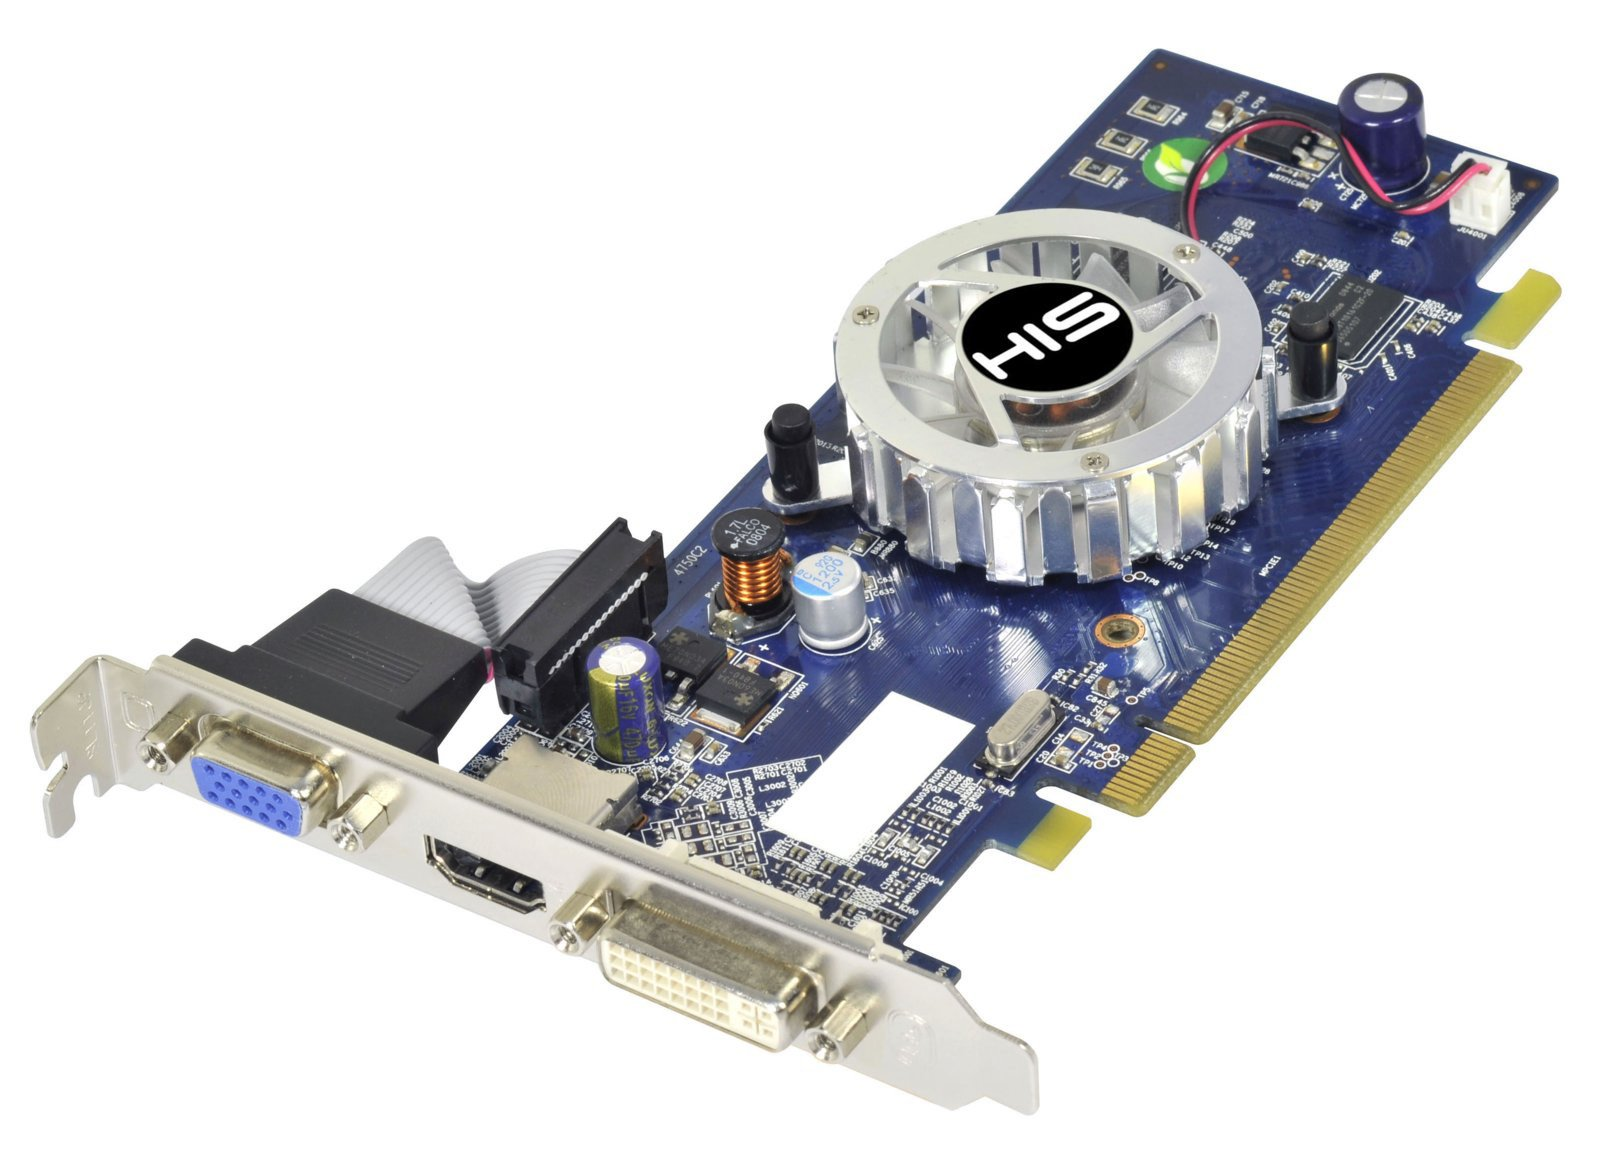 Ati radeon hd 2600 xt amd catalyst 122 pre-certified driver